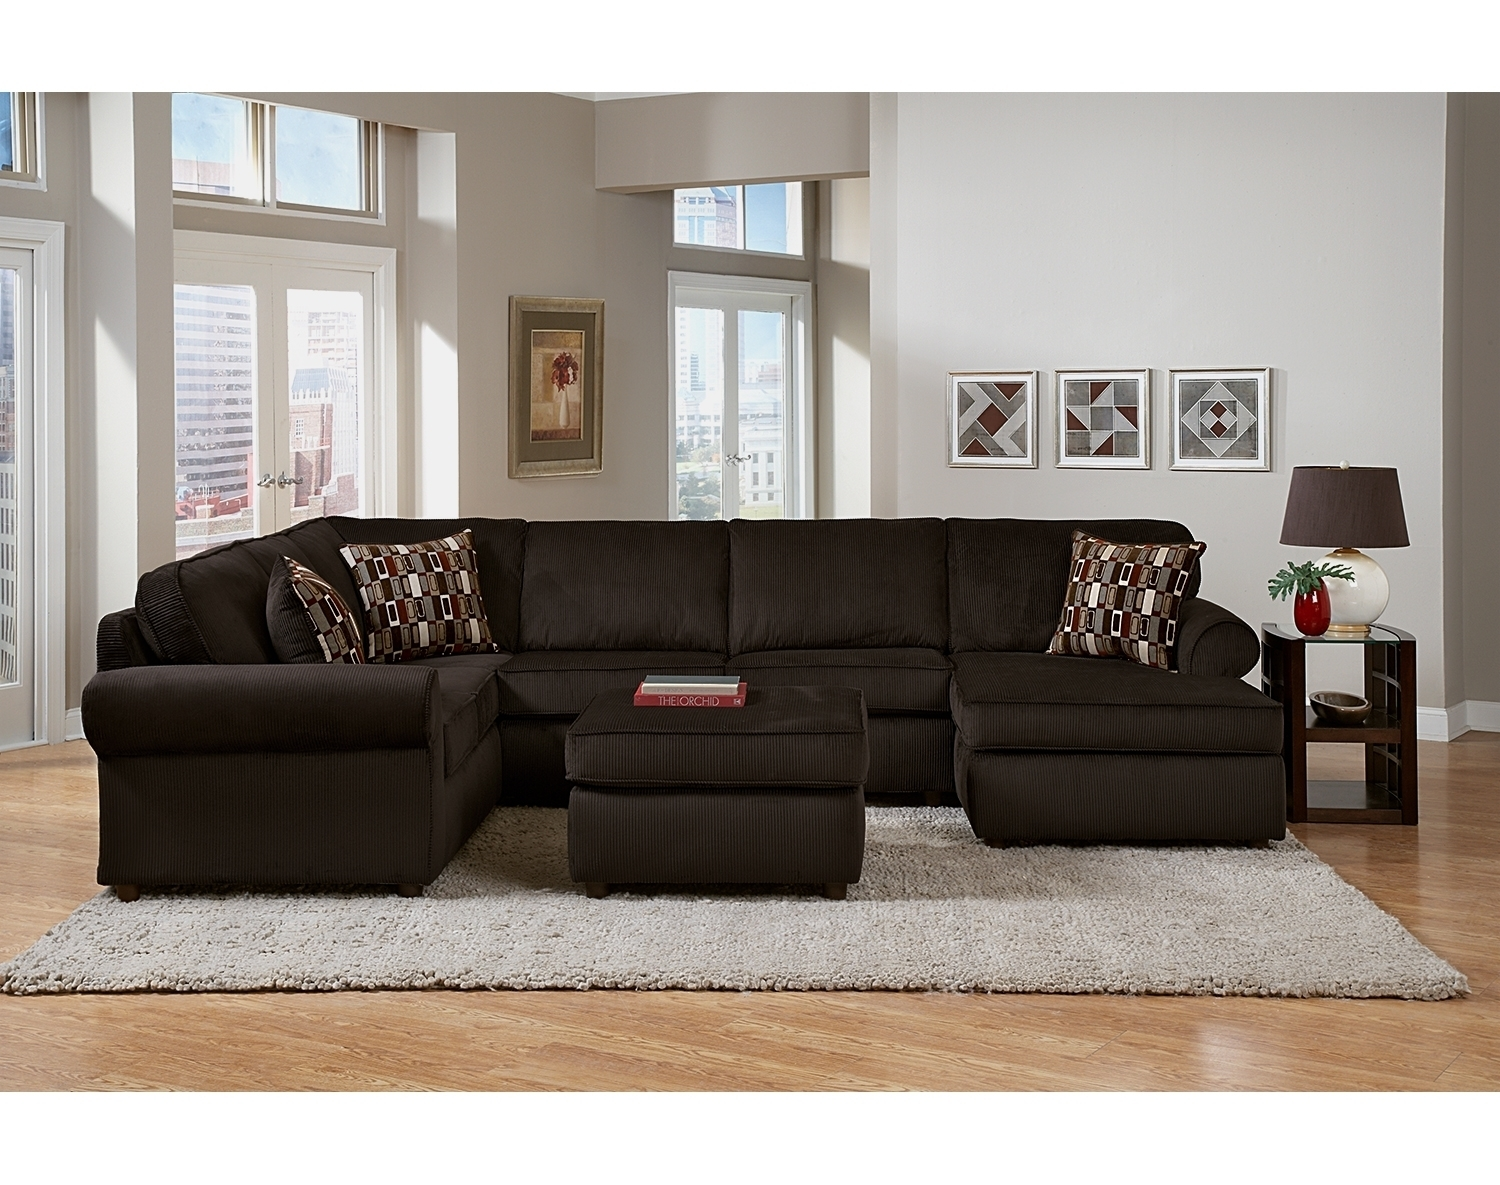 Stylish Sectional Sofas Cincinnati – Mediasupload Intended For Cincinnati Sectional Sofas (Image 9 of 10)